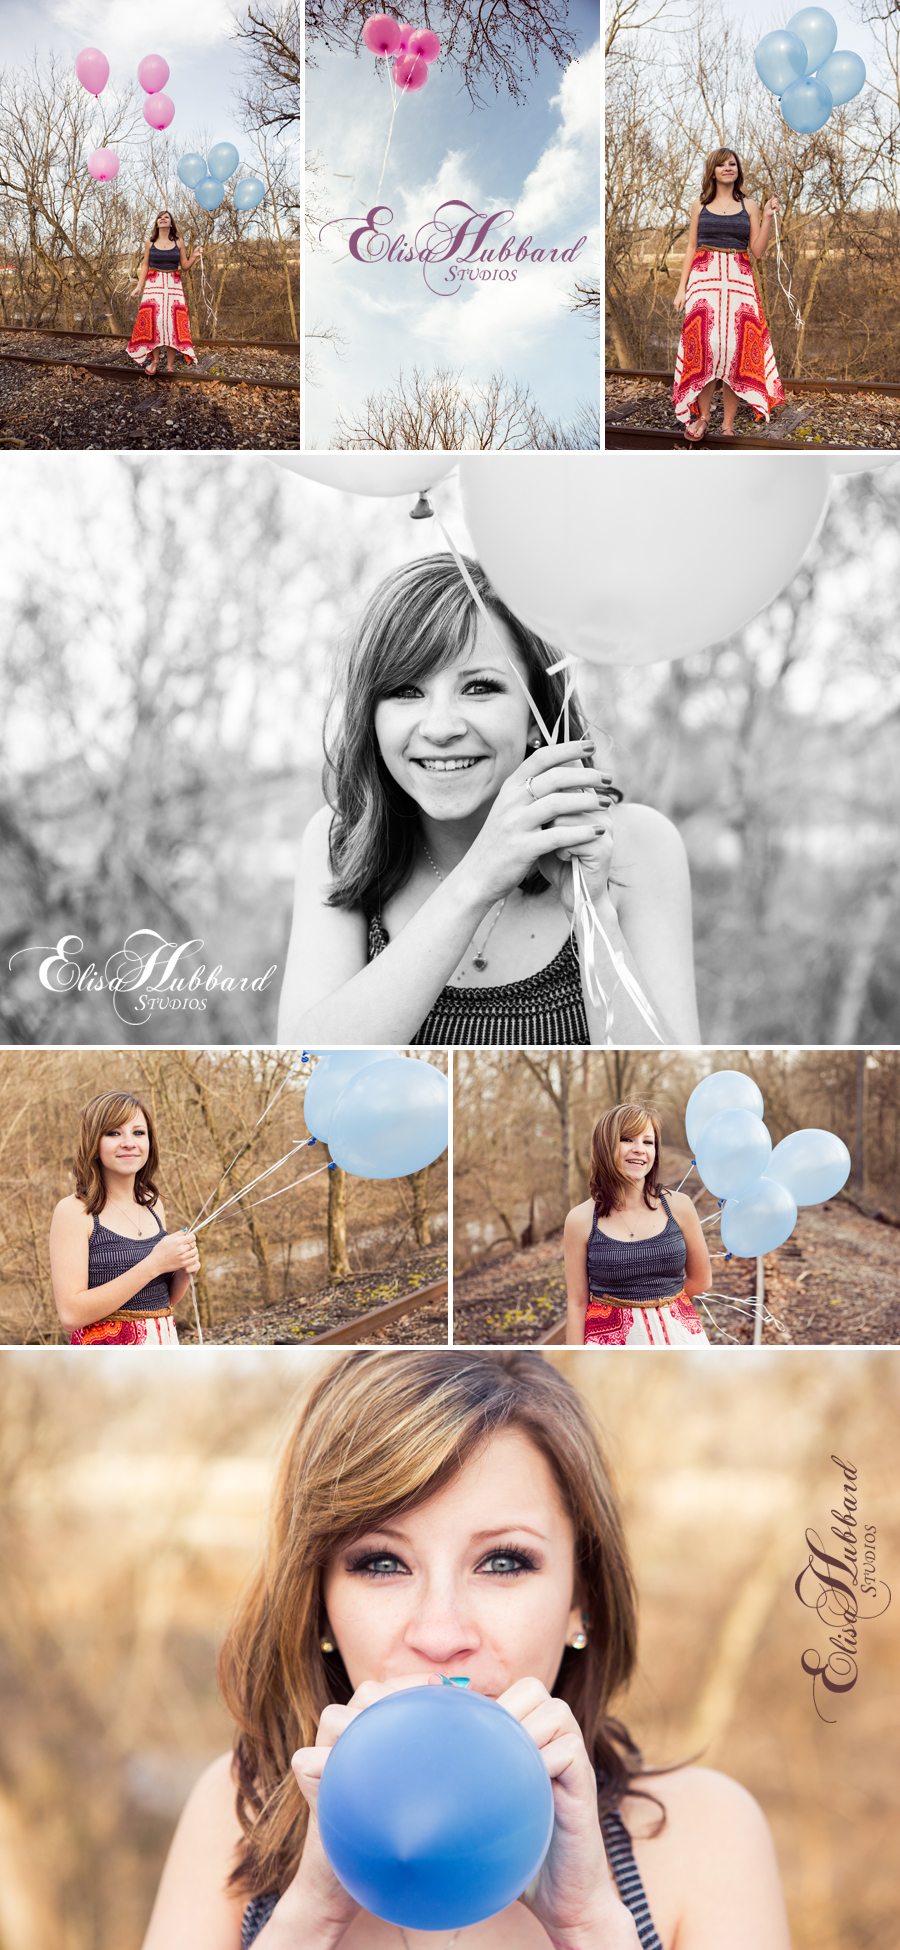 Elisa Hubbard Studios, On-Location Photography, Gender Reveal, Balloons